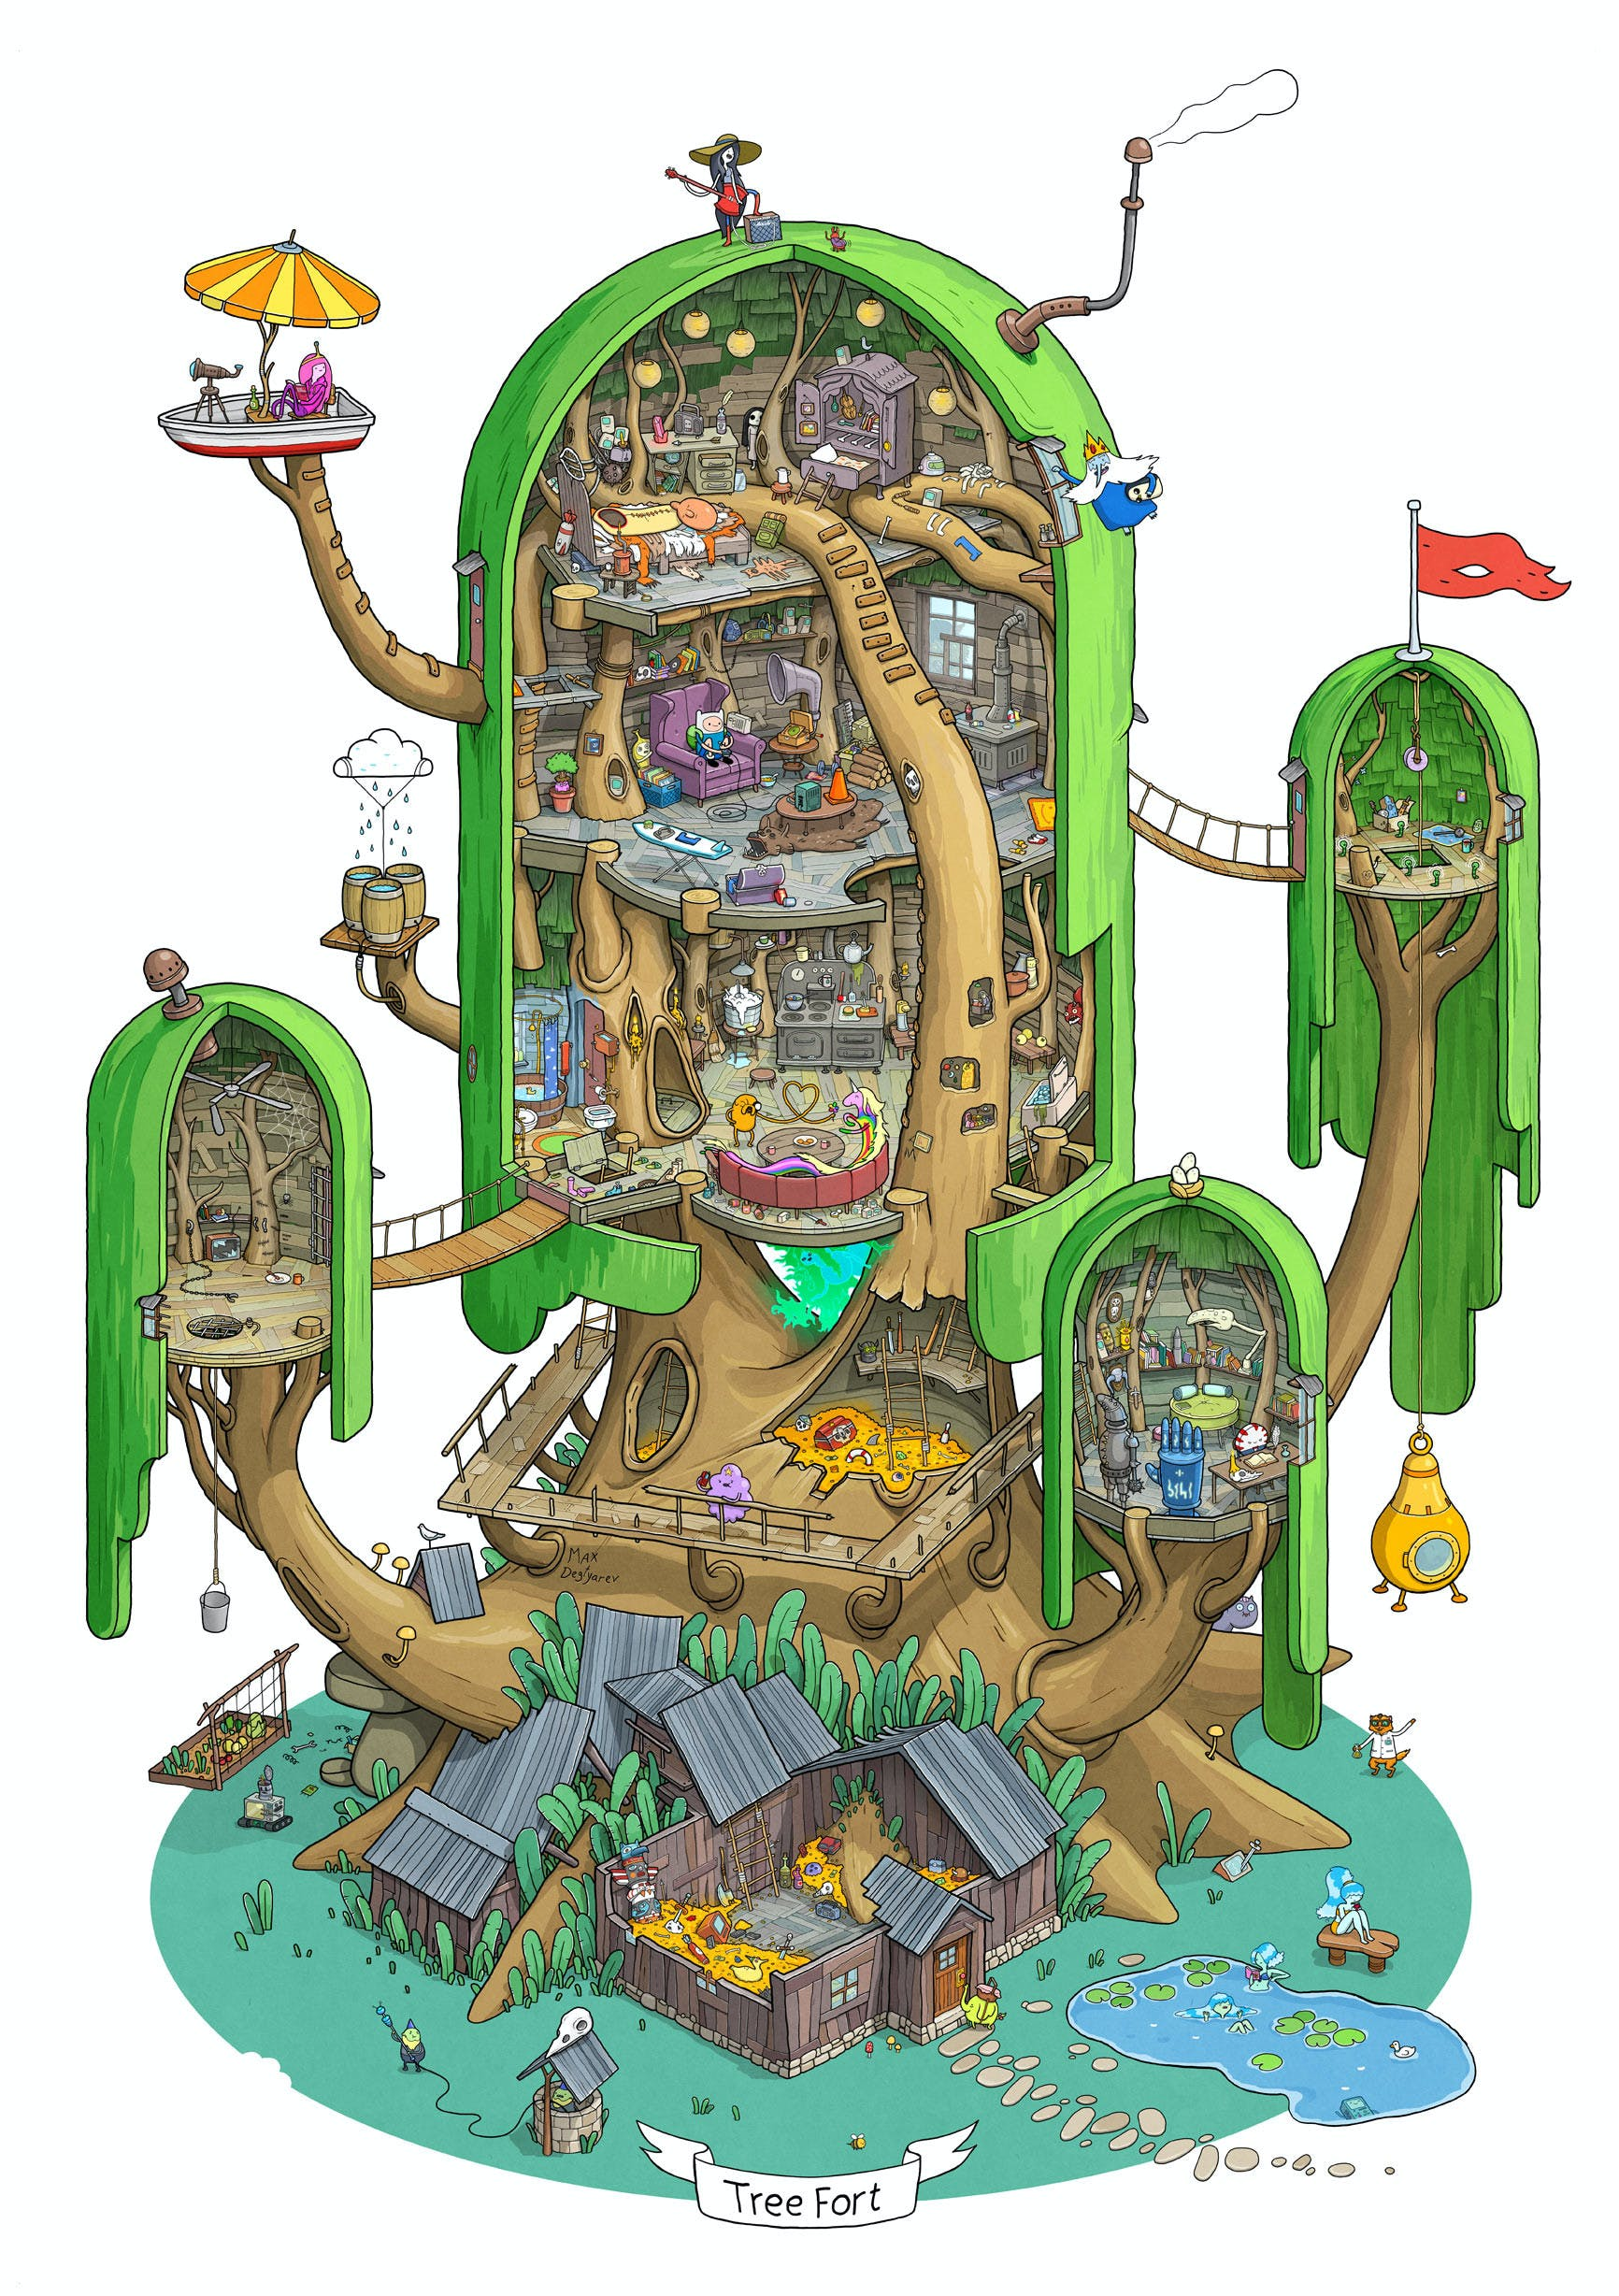 Finn and Jake's treehouse by Max Degtyarev